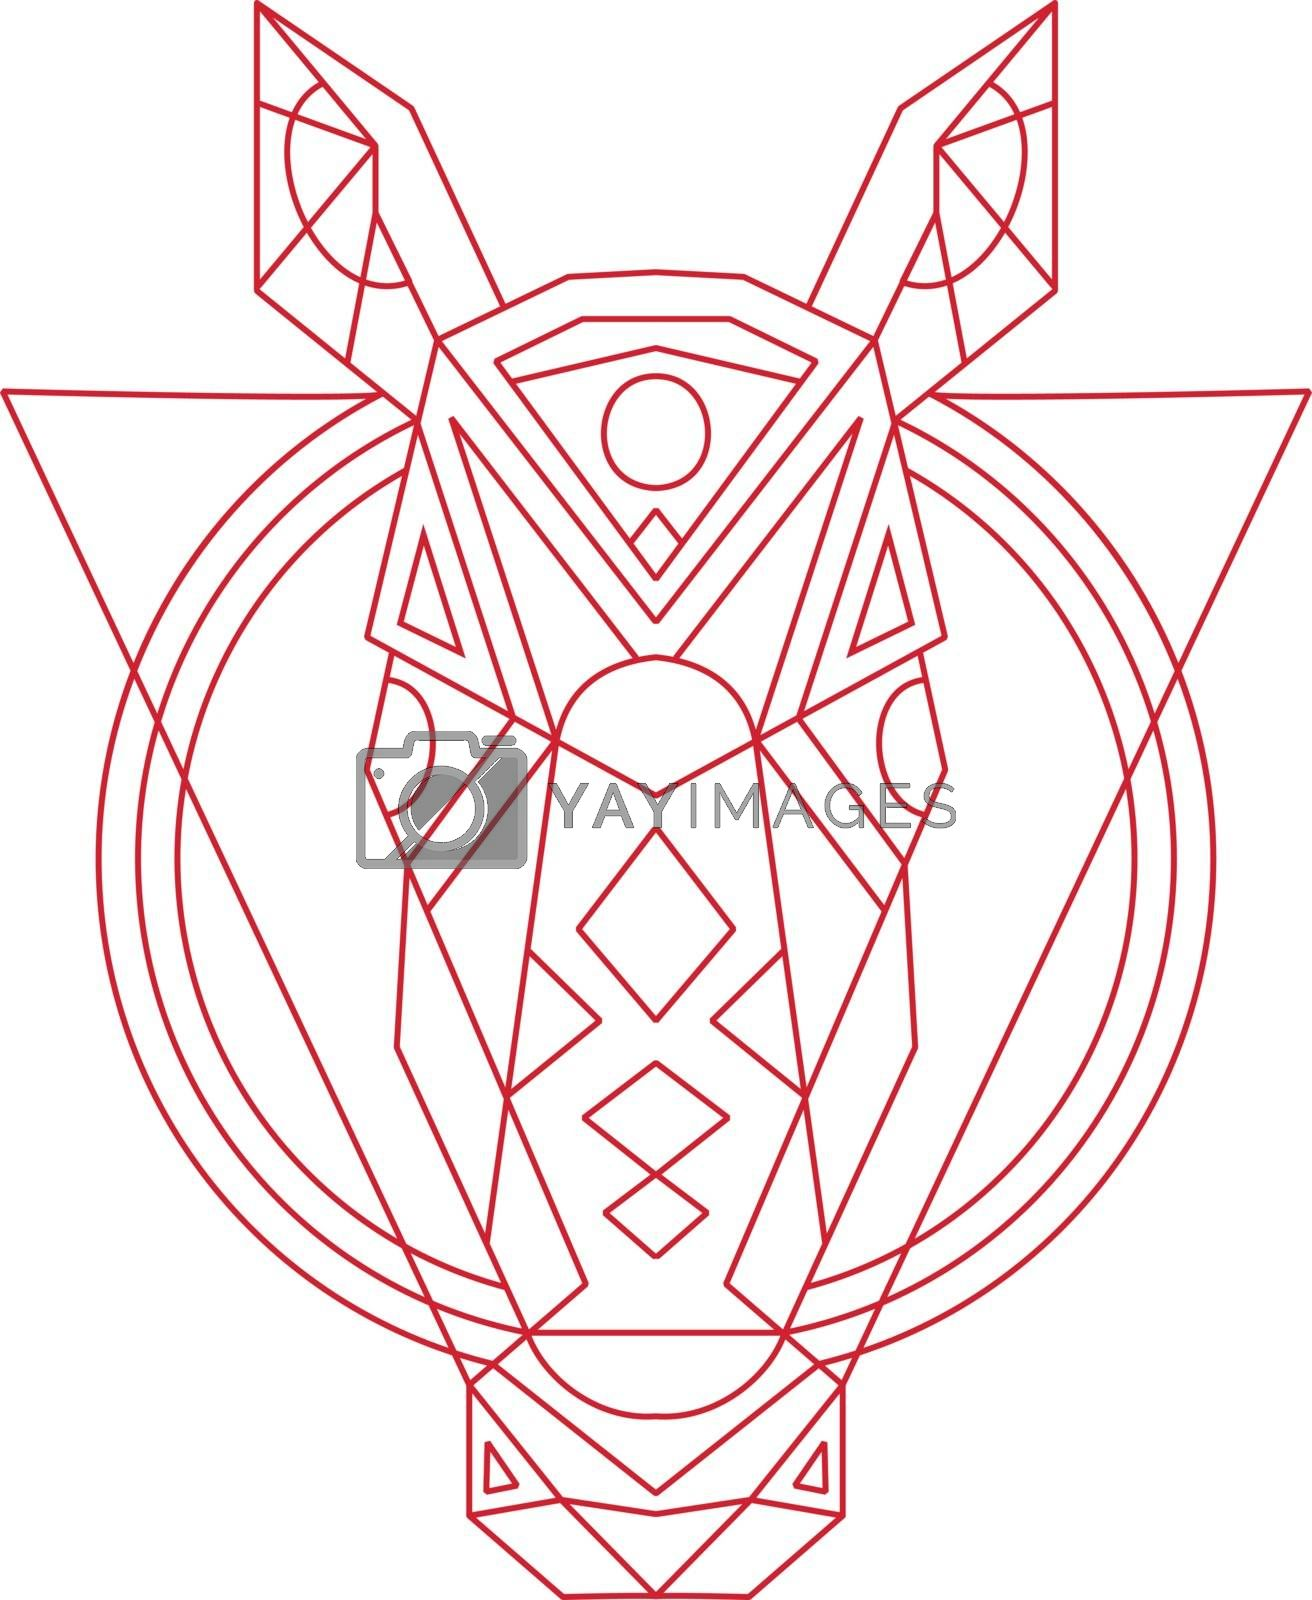 Geometric Horse Head Line Drawing Royalty Free Stock Image Stock Photos Royalty Free Images Vectors Footage Yayimages